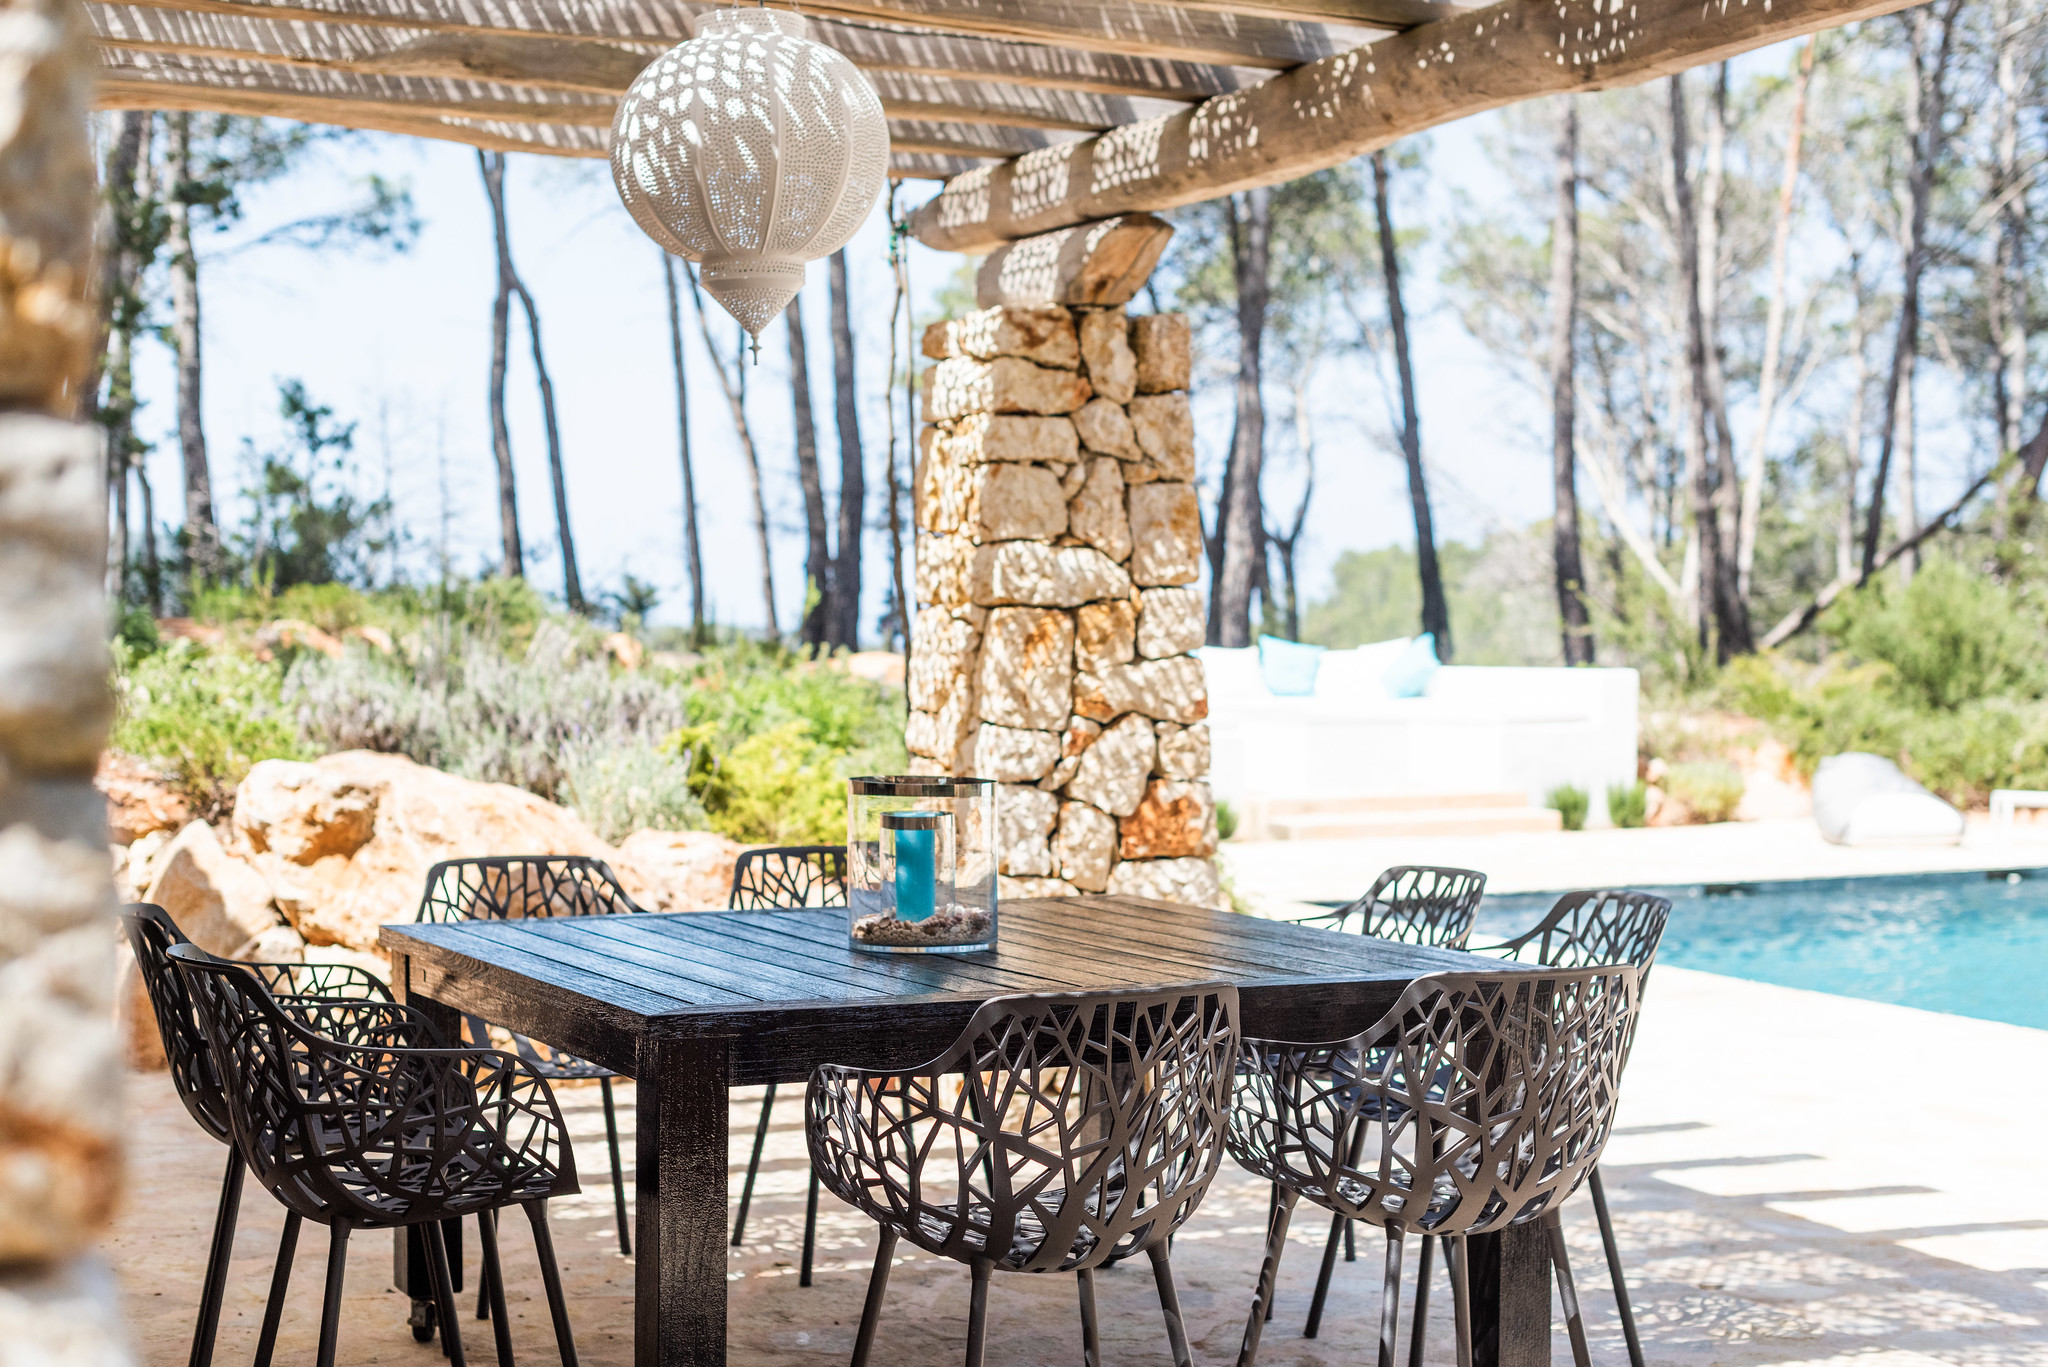 https://www.white-ibiza.com/wp-content/uploads/2020/05/white-ibiza-villas-can-terra-poolside-dining.jpg